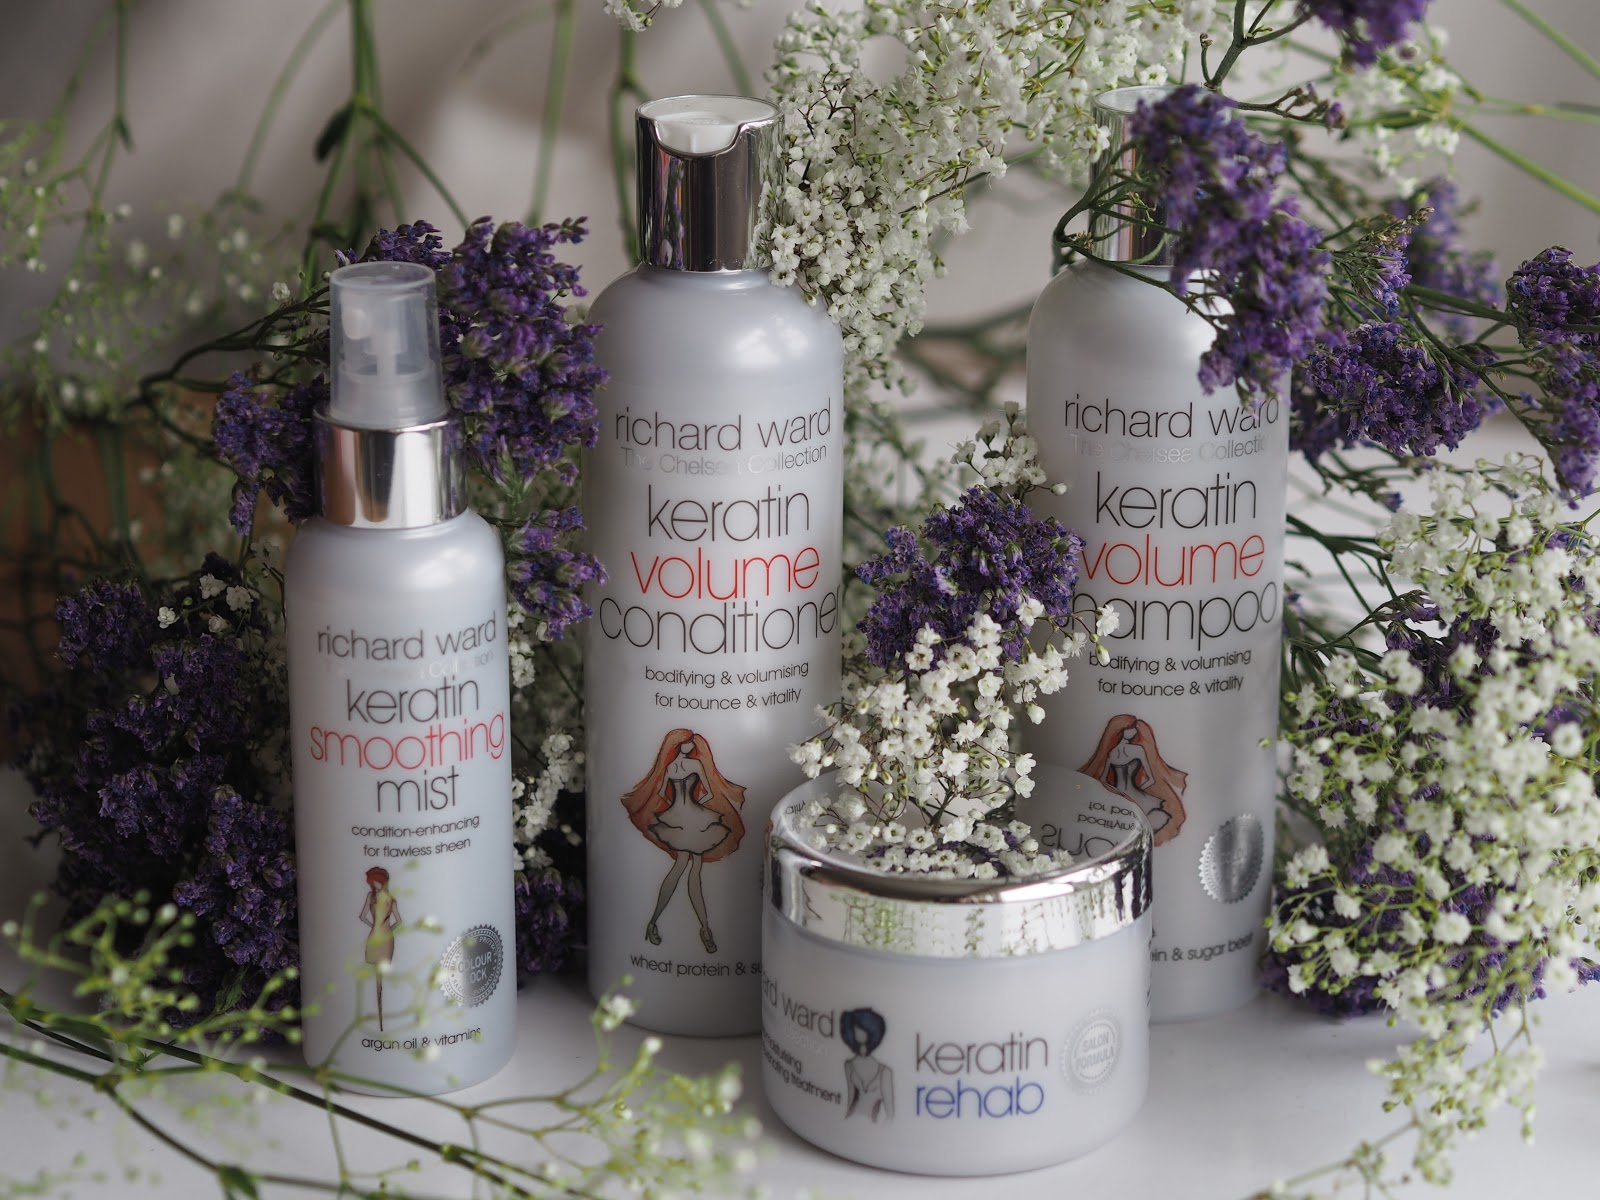 Richard Ward Chelsea Collection Volume series, Shampoo, Conditioner, Spray and Hair Mask against pretty flowers